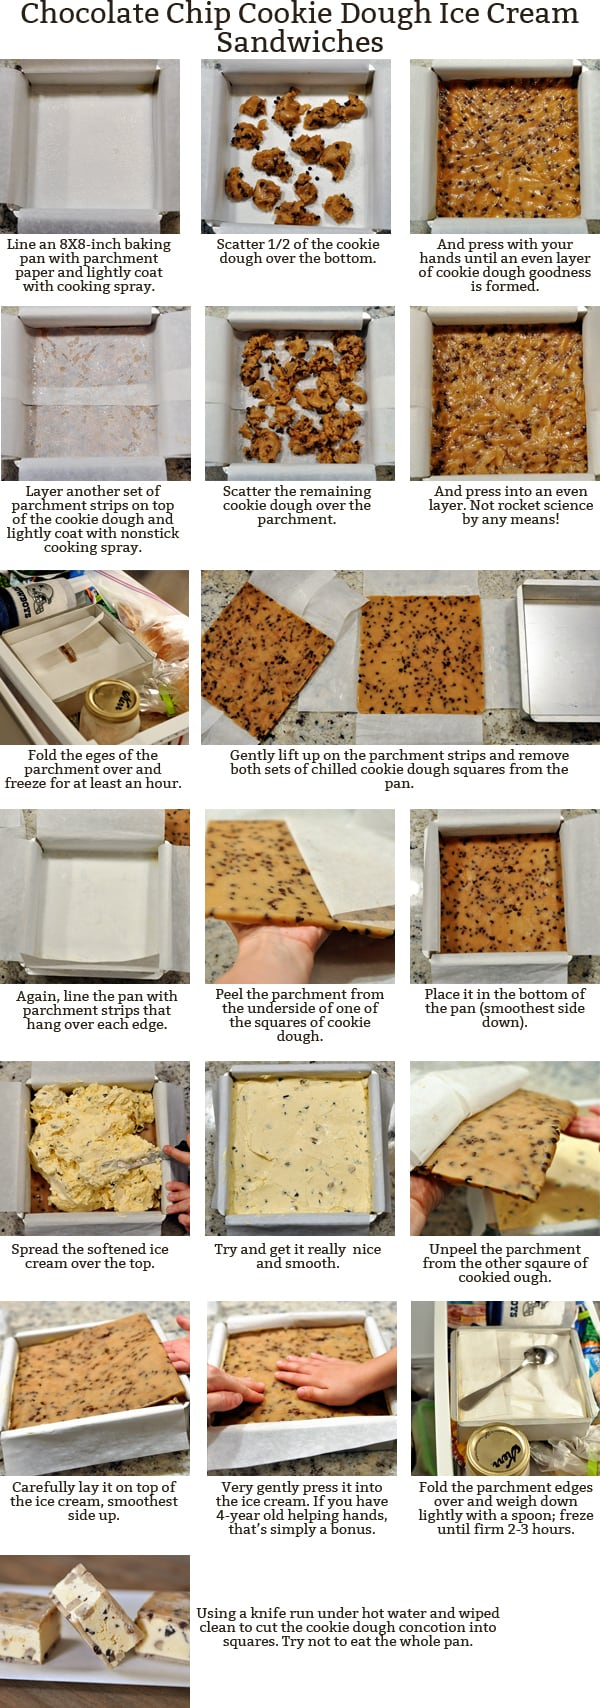 Step-by-step pictures and word instructions on how to make homemade chocolate chip cookie dough ice cream sandwiches.